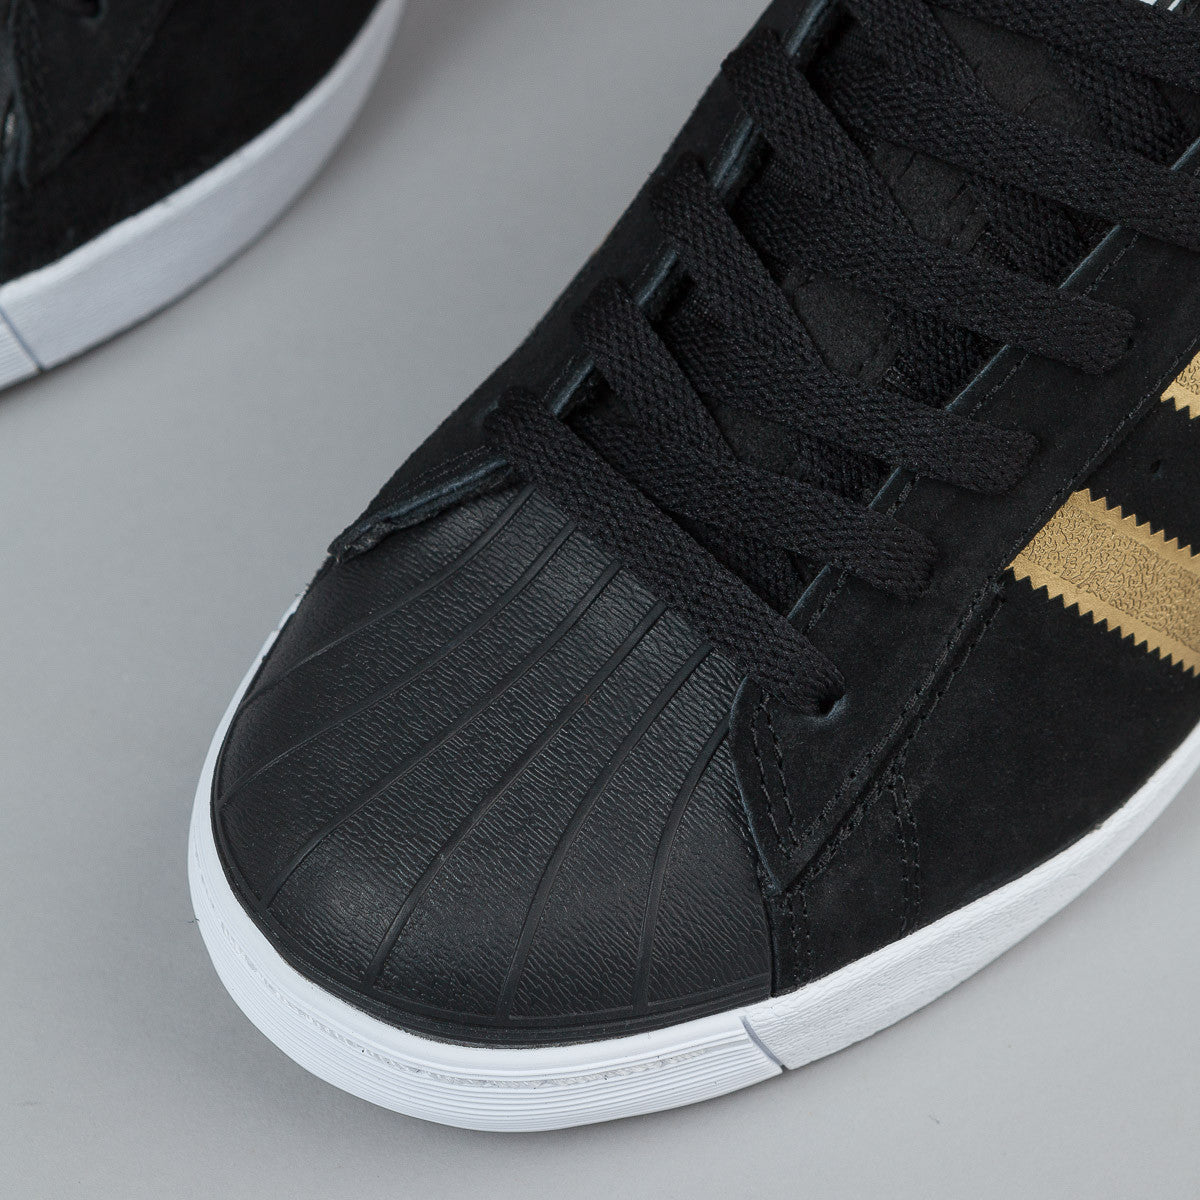 Adidas Superstar Vulc Adv Shoes - Black / Gold Metallic / Collegiate Red